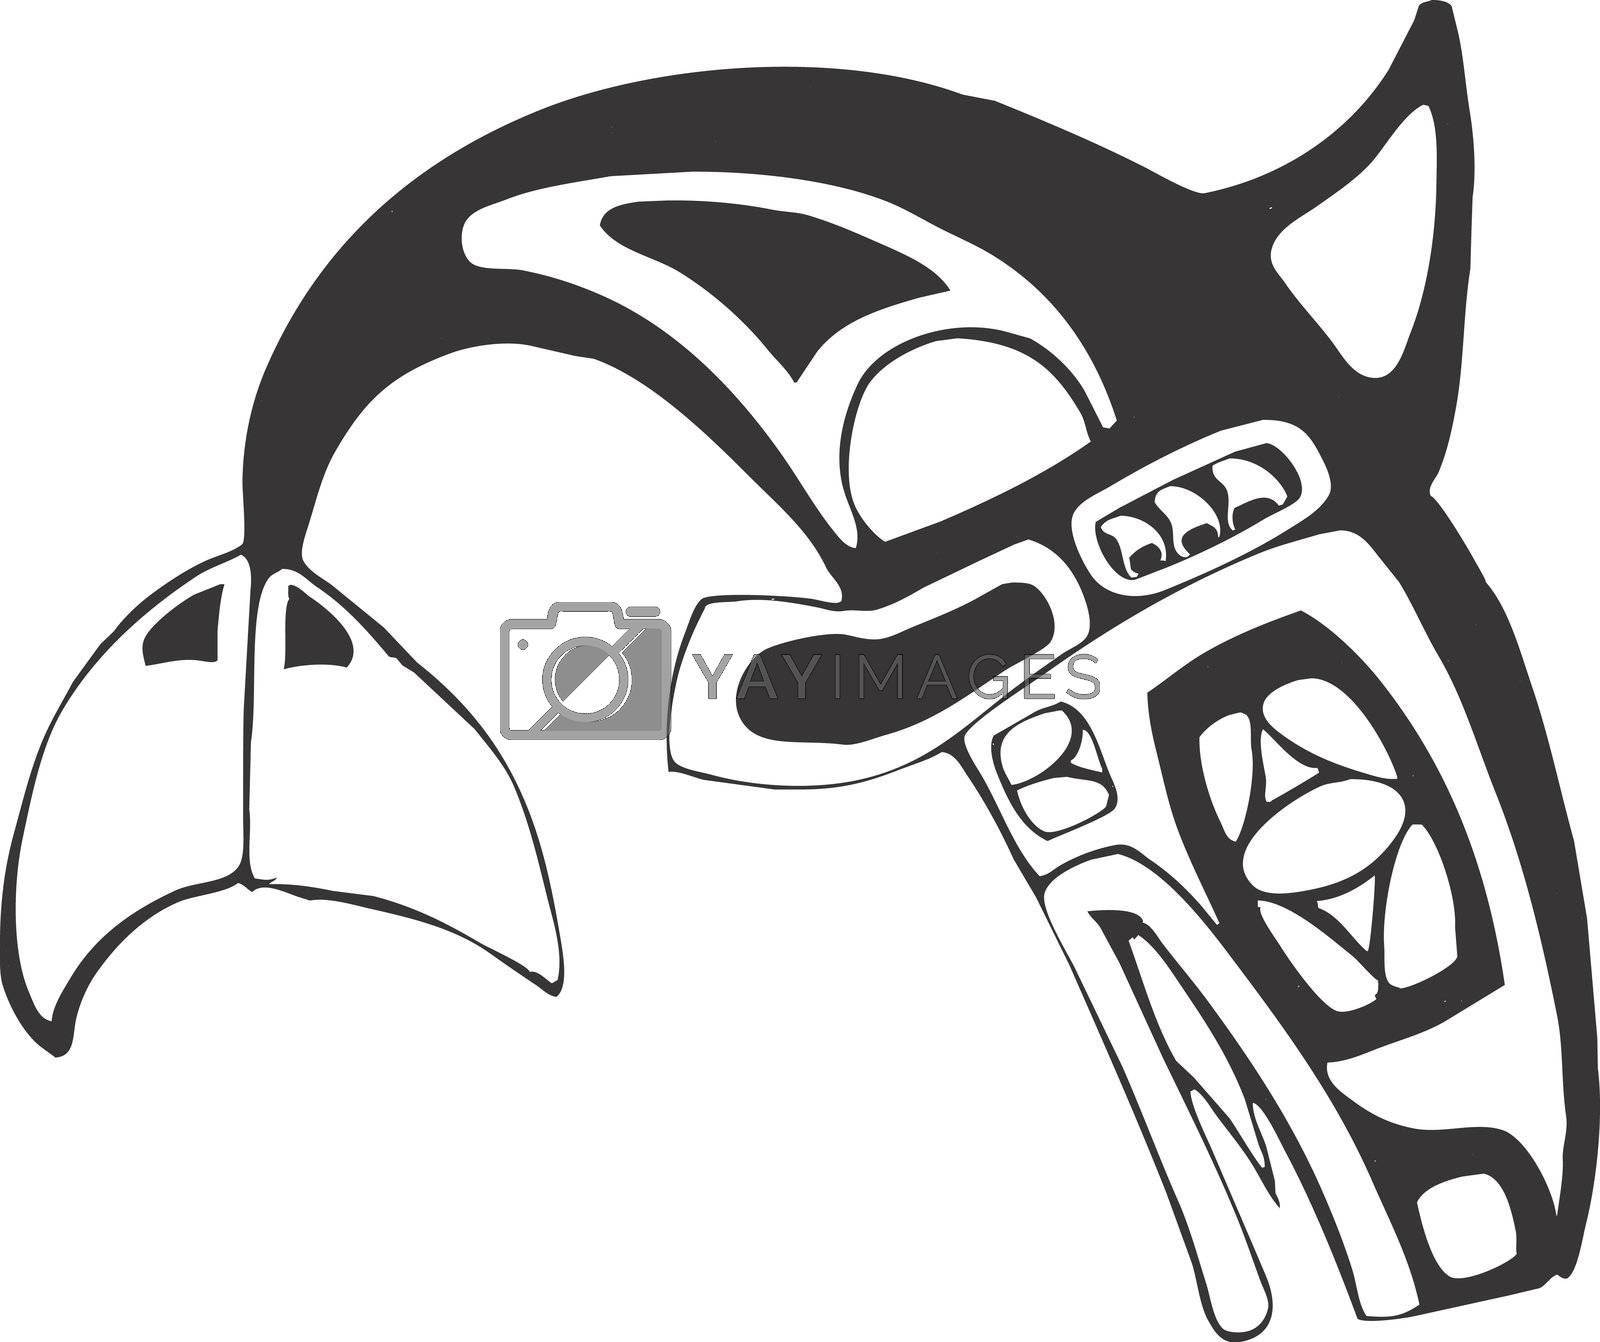 Orca-Killer Whale in the style of Northwest Coast Native Culture.